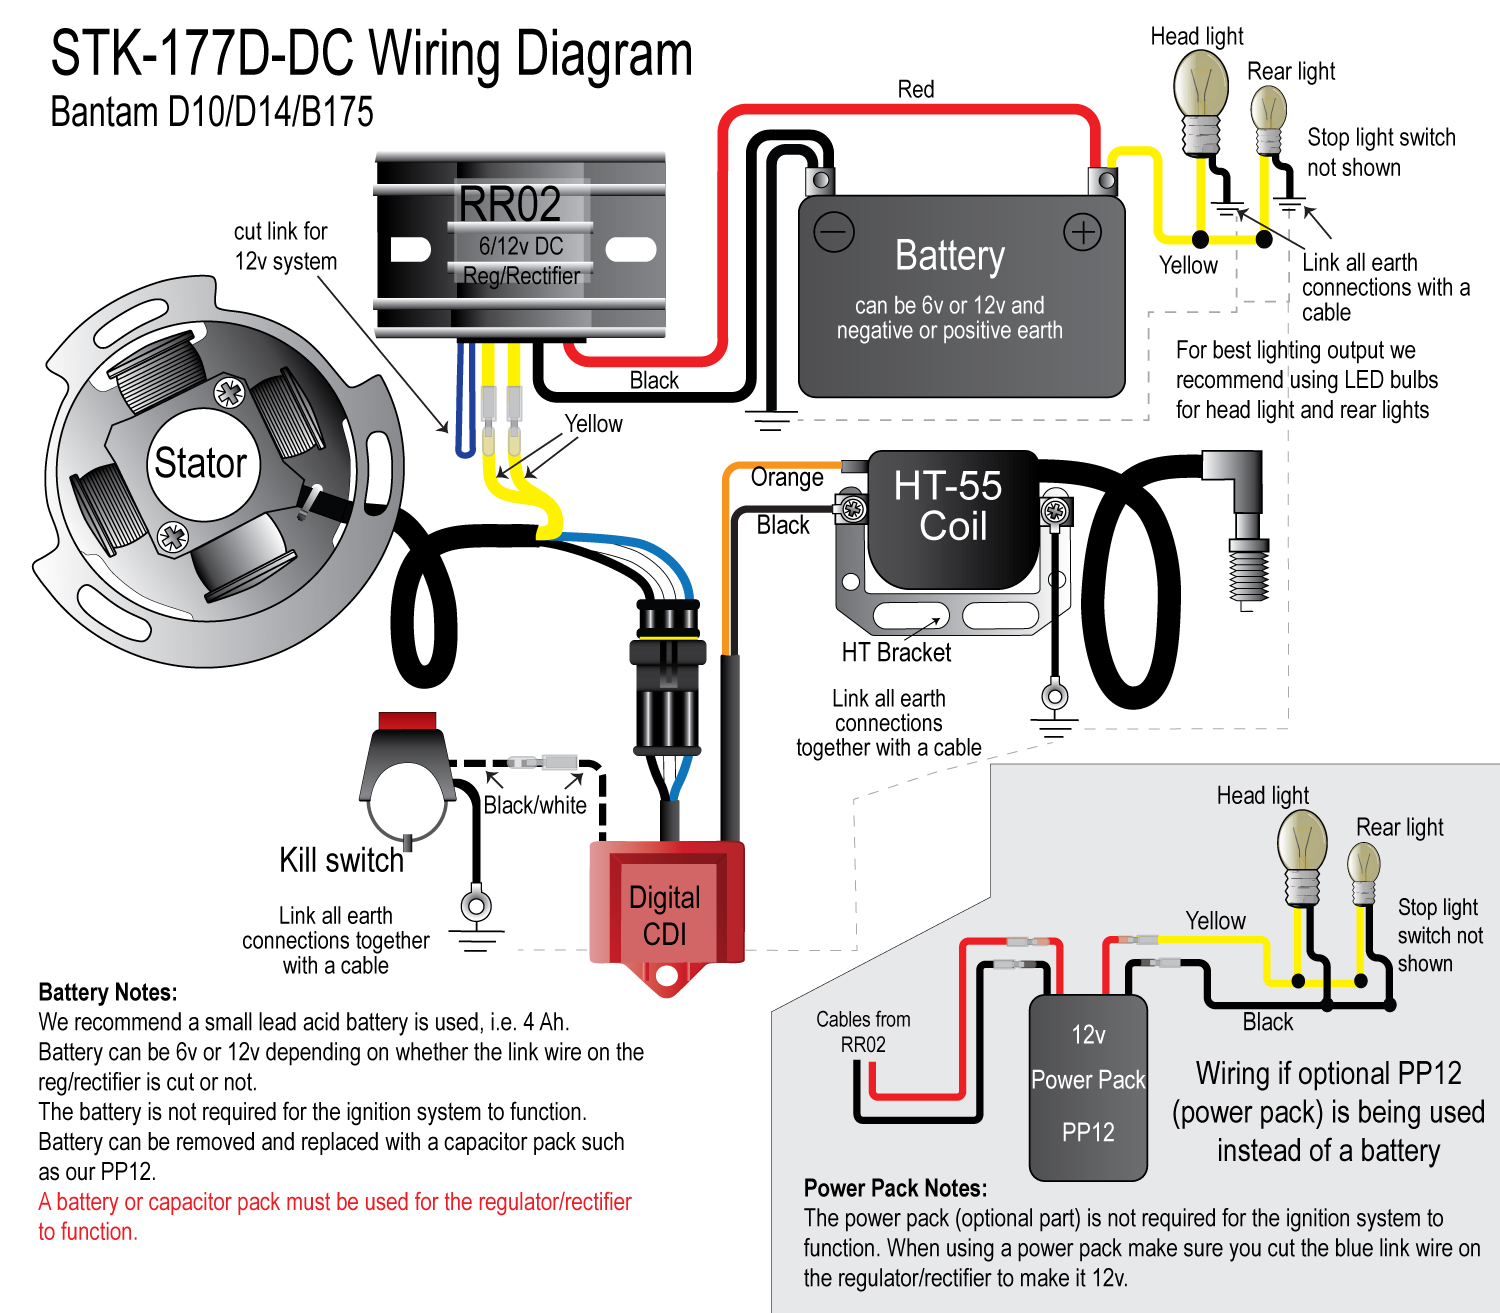 STK 177 wiring diagram cdi ignition lighting external rotor kit for bsa bantam d10, d14 electrex world wiring diagram at webbmarketing.co